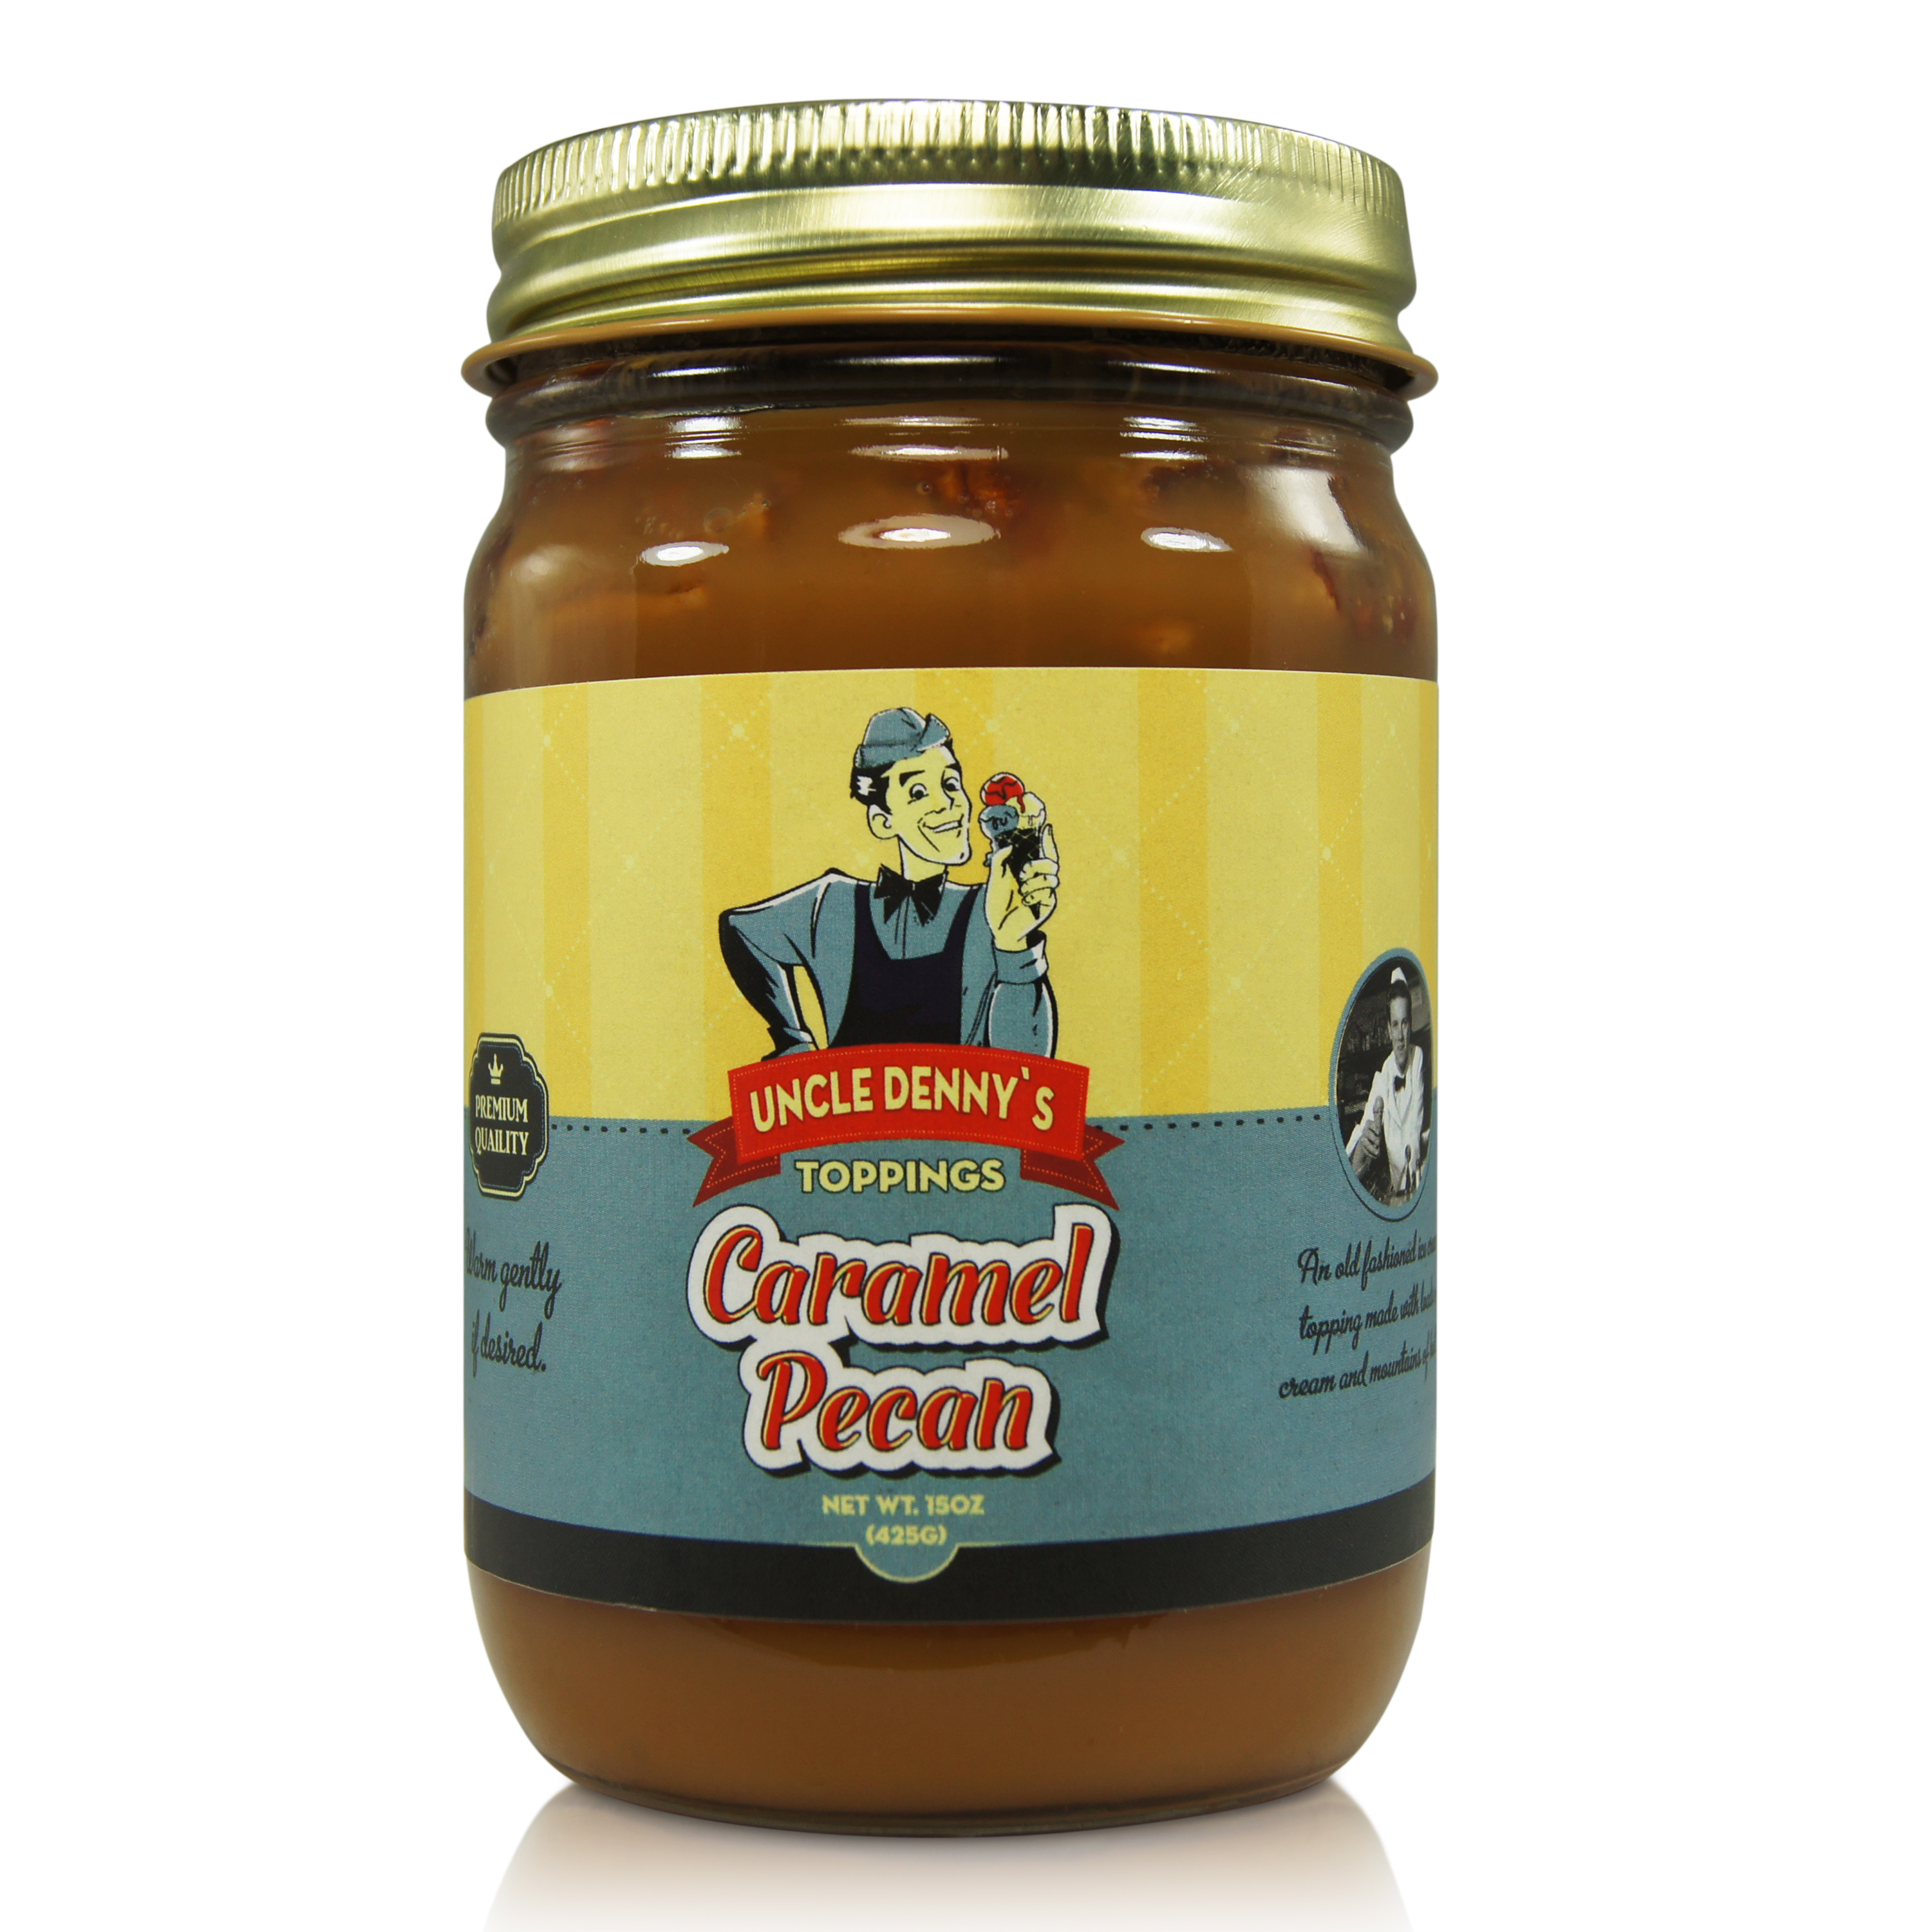 Uncle Denny's Caramel Pecan Gourmet Ice Cream Topping (15oz.) by Pioneer Valley by Pioneer Valley